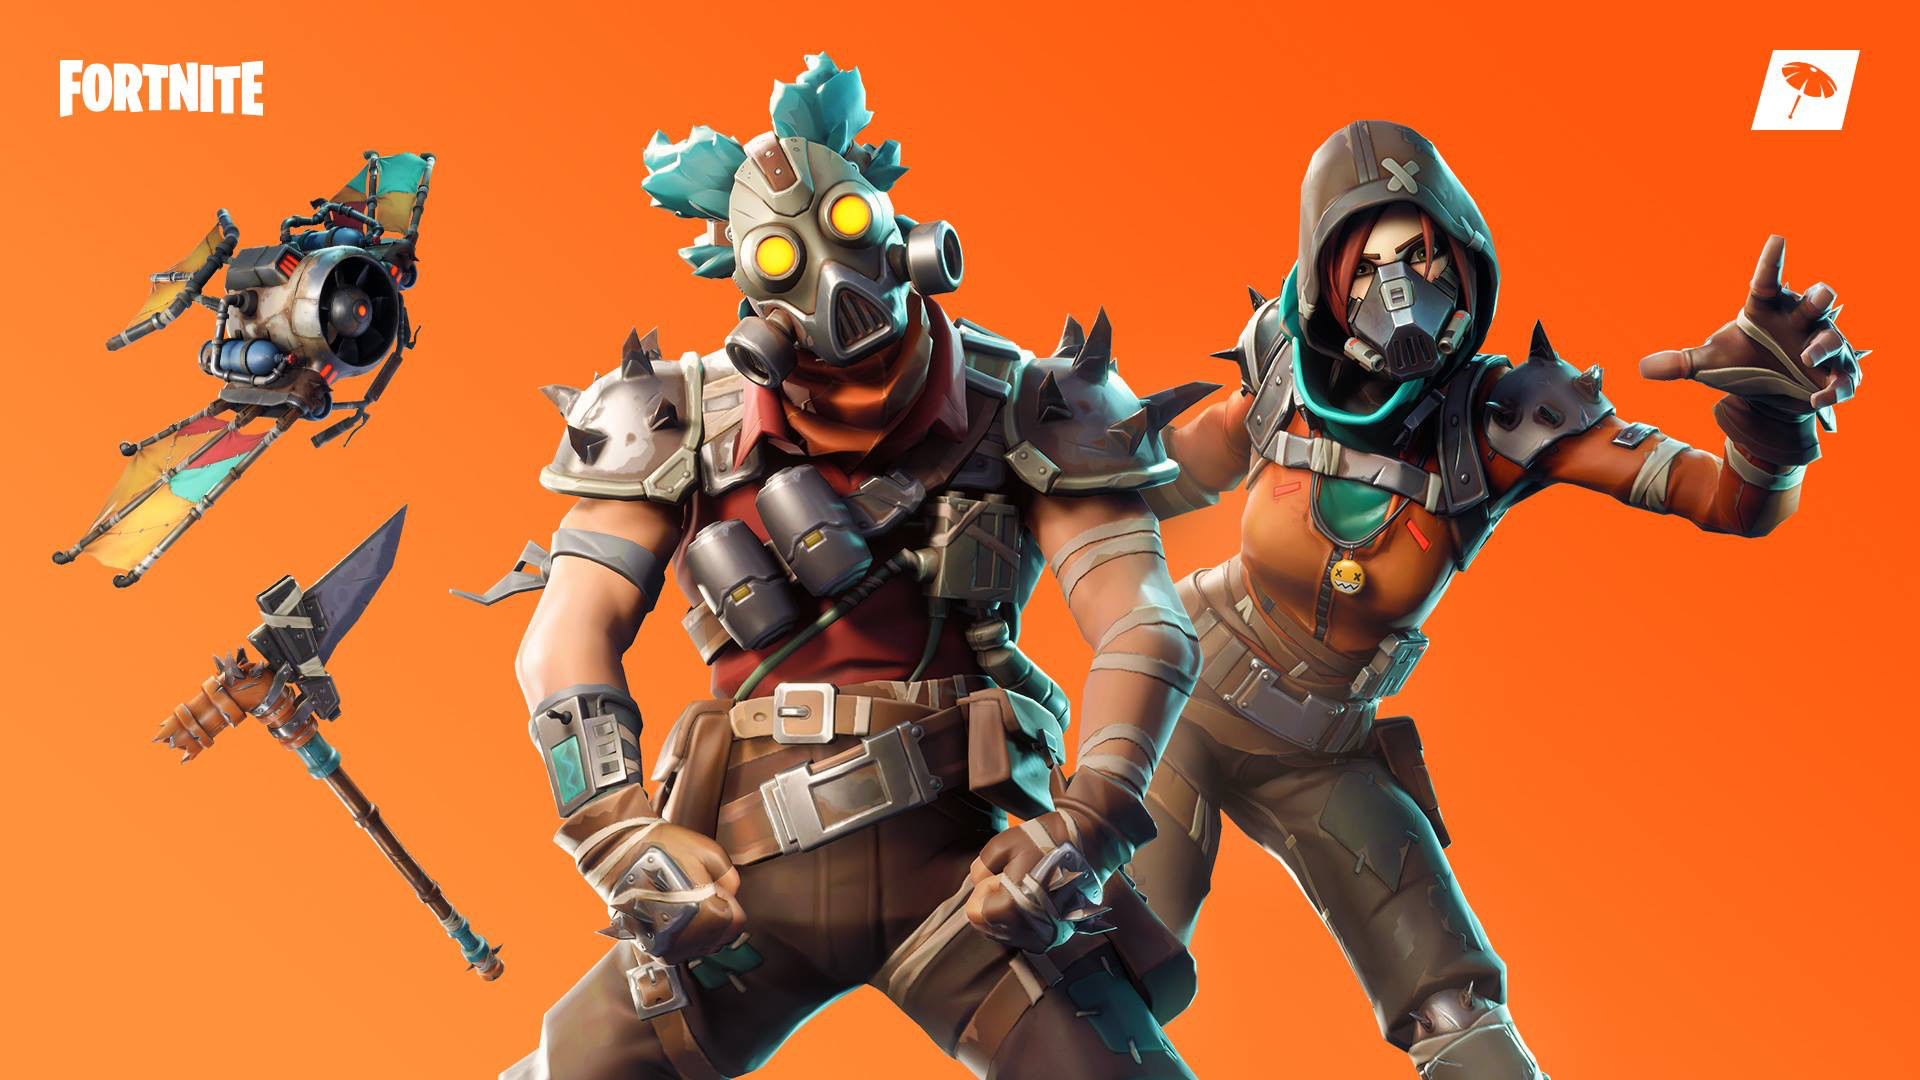 New Ruckus and Mayhem Outfits   Fortnite Wallpaper by Rabcat 4383 1920x1080